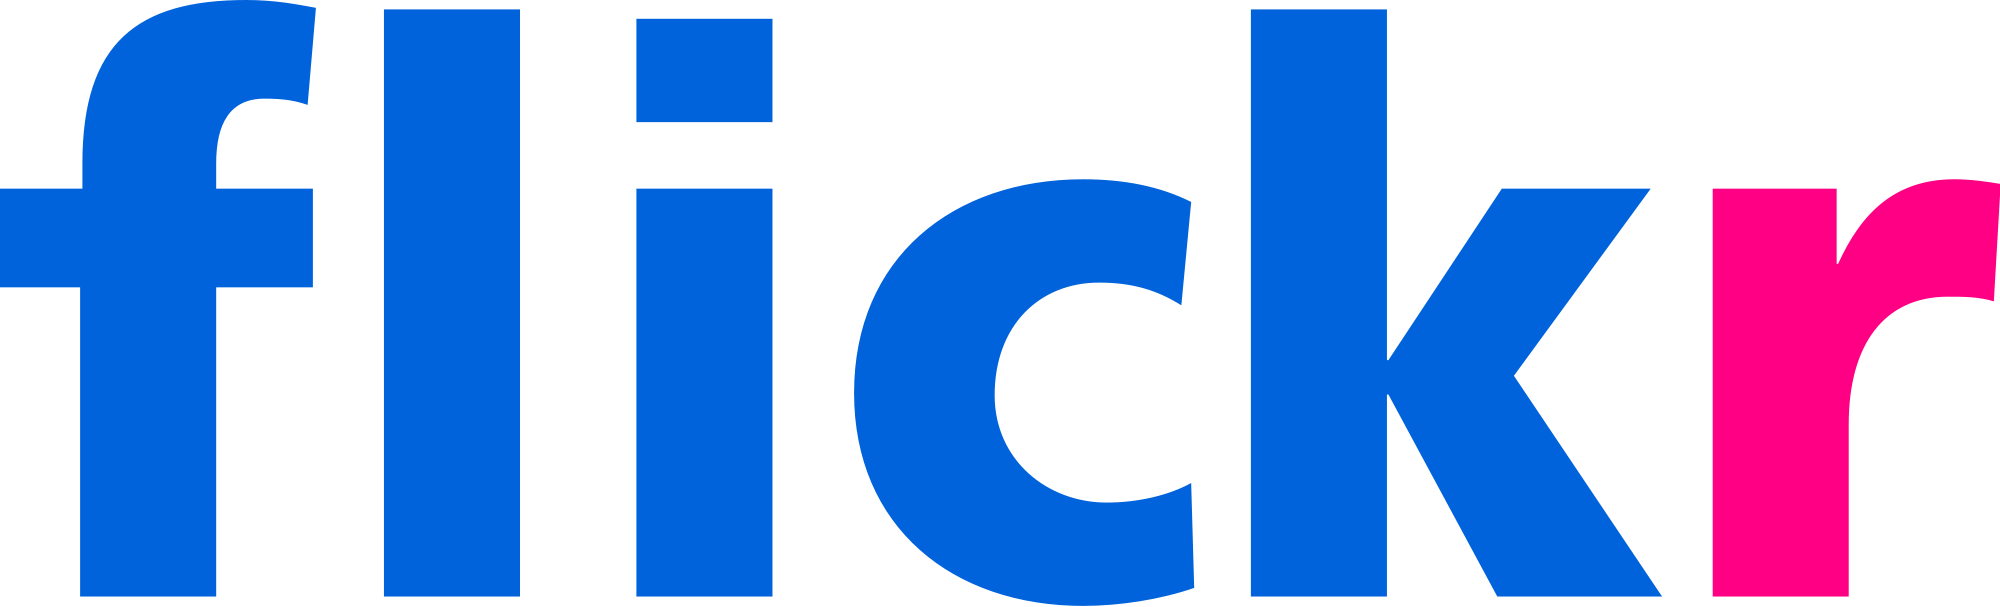 Image result for flickr logo